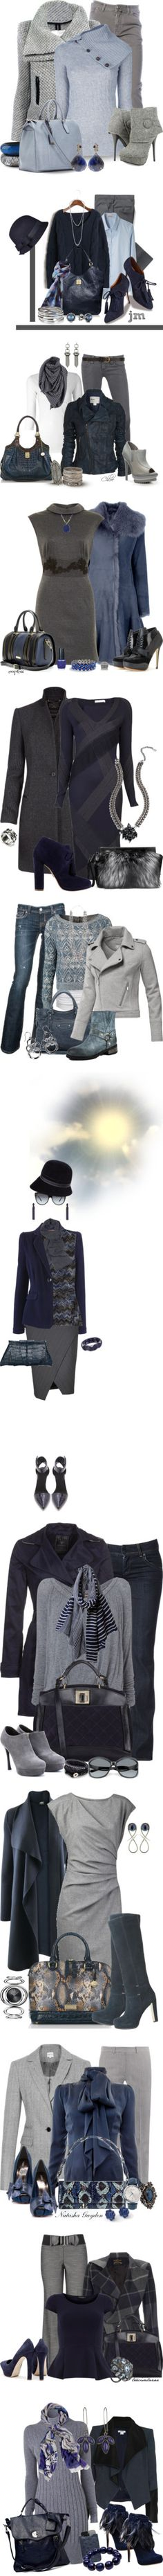 """""""Gray and Blue Contest"""" by jackie22 ❤ liked on Polyvore"""